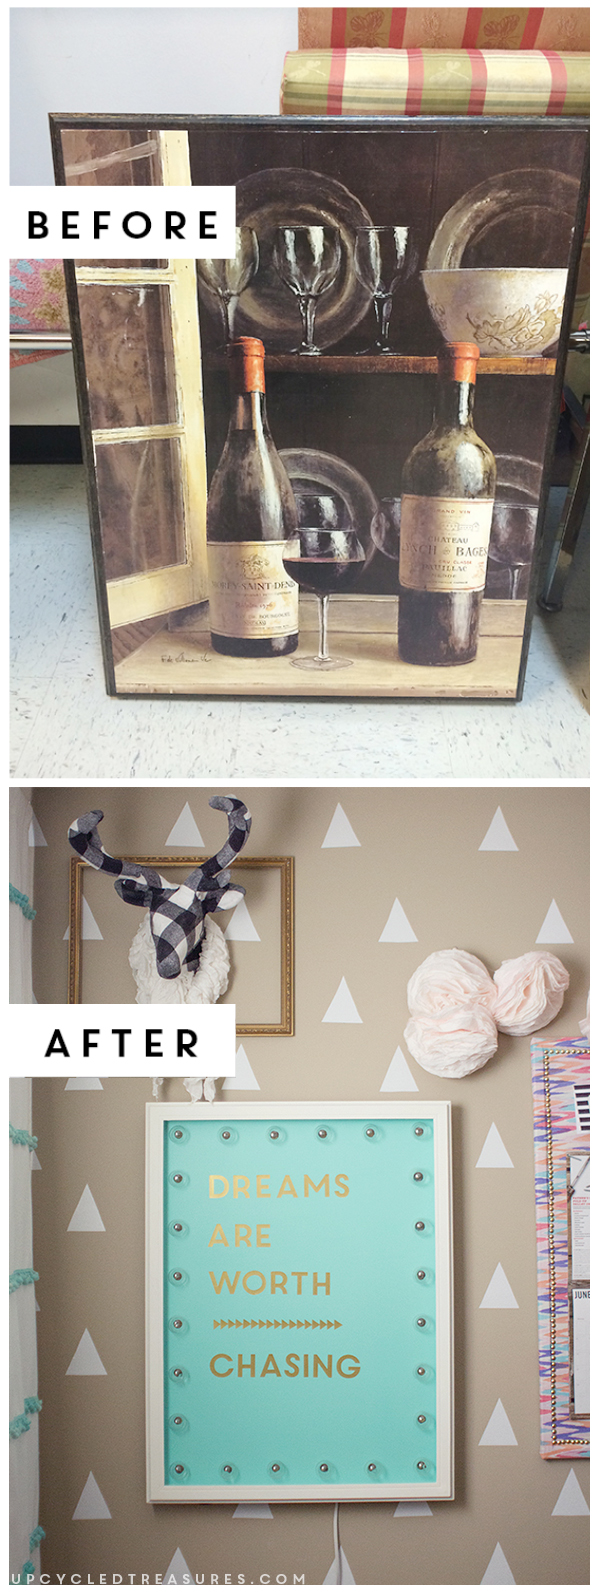 Do you love string lights and the ambiance they put off? You have to check out all of these creative string light ideas! MountainModernLife.com